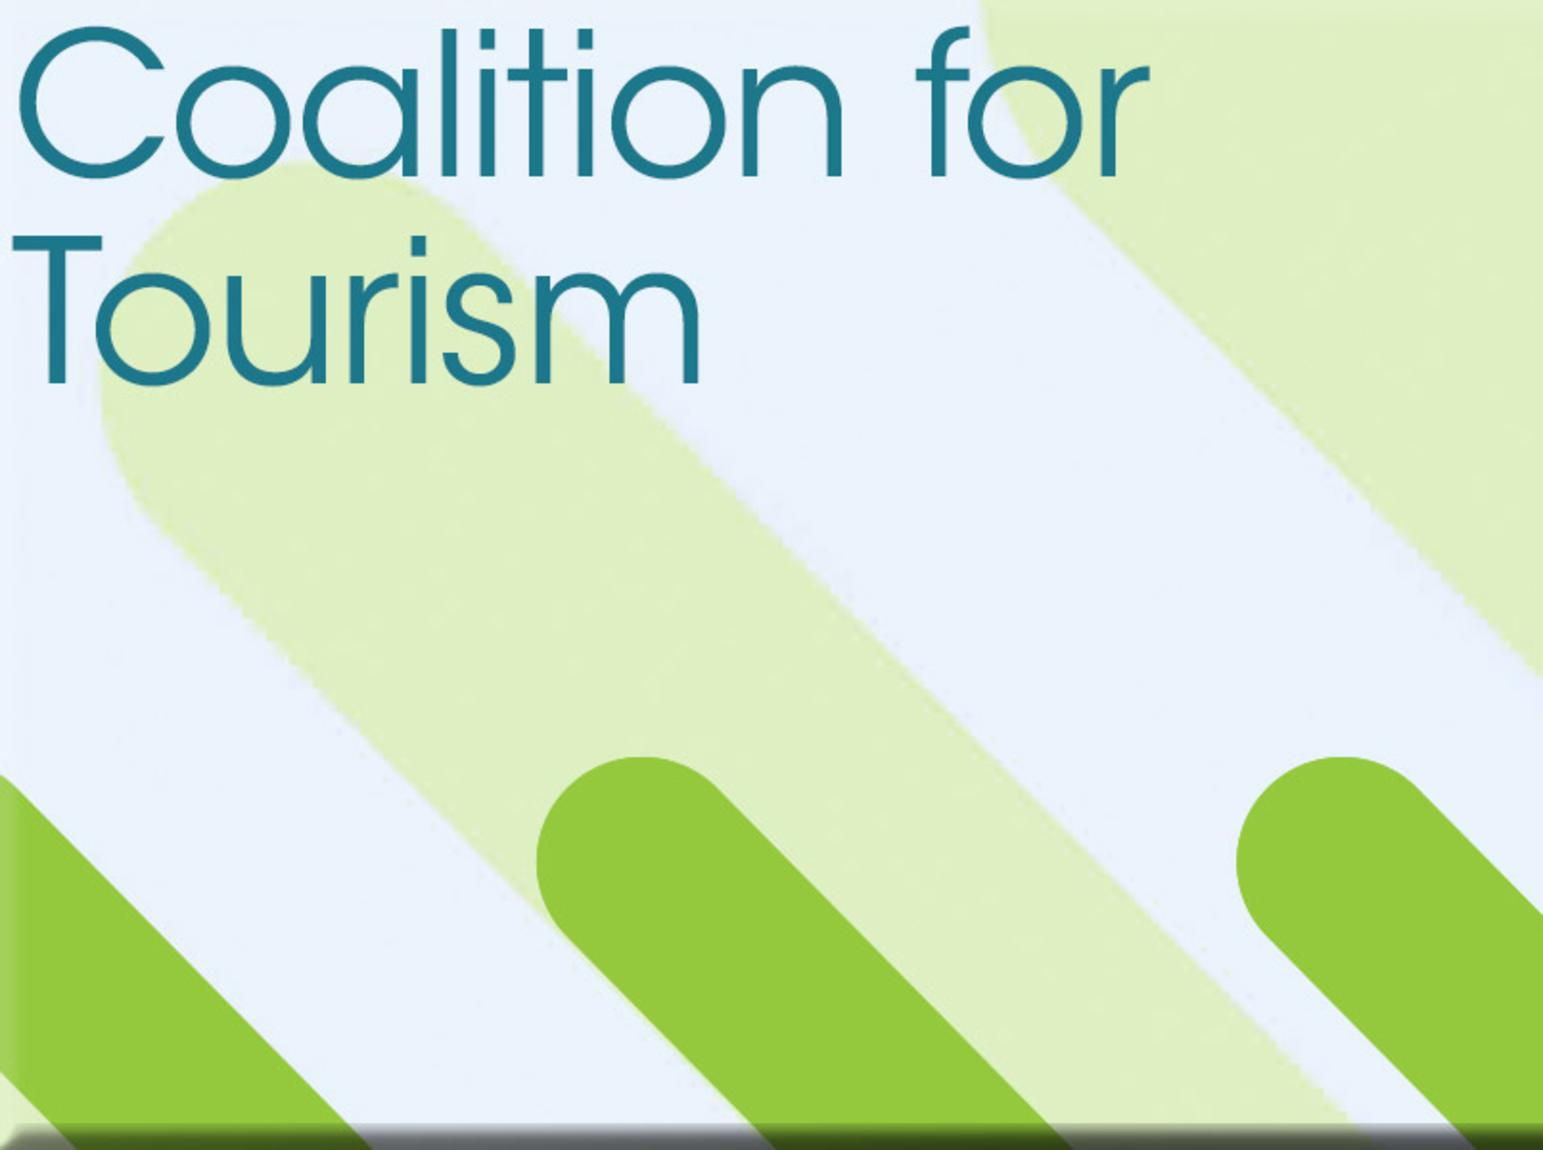 Coalition for Tourism